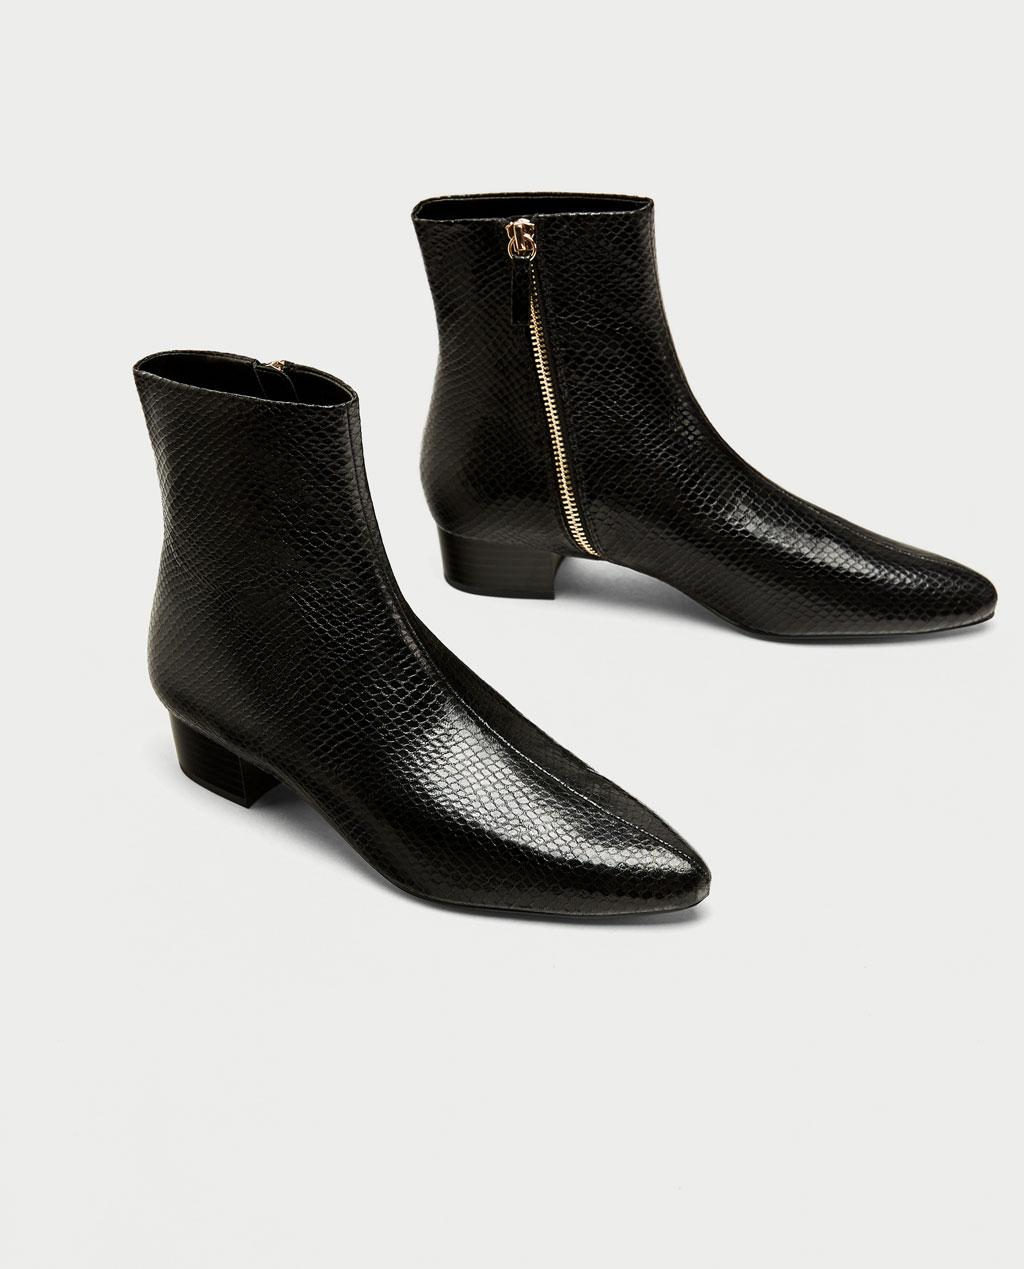 537be60f2f51c The €26 Zara boots that you'll wear with literally everything all ...